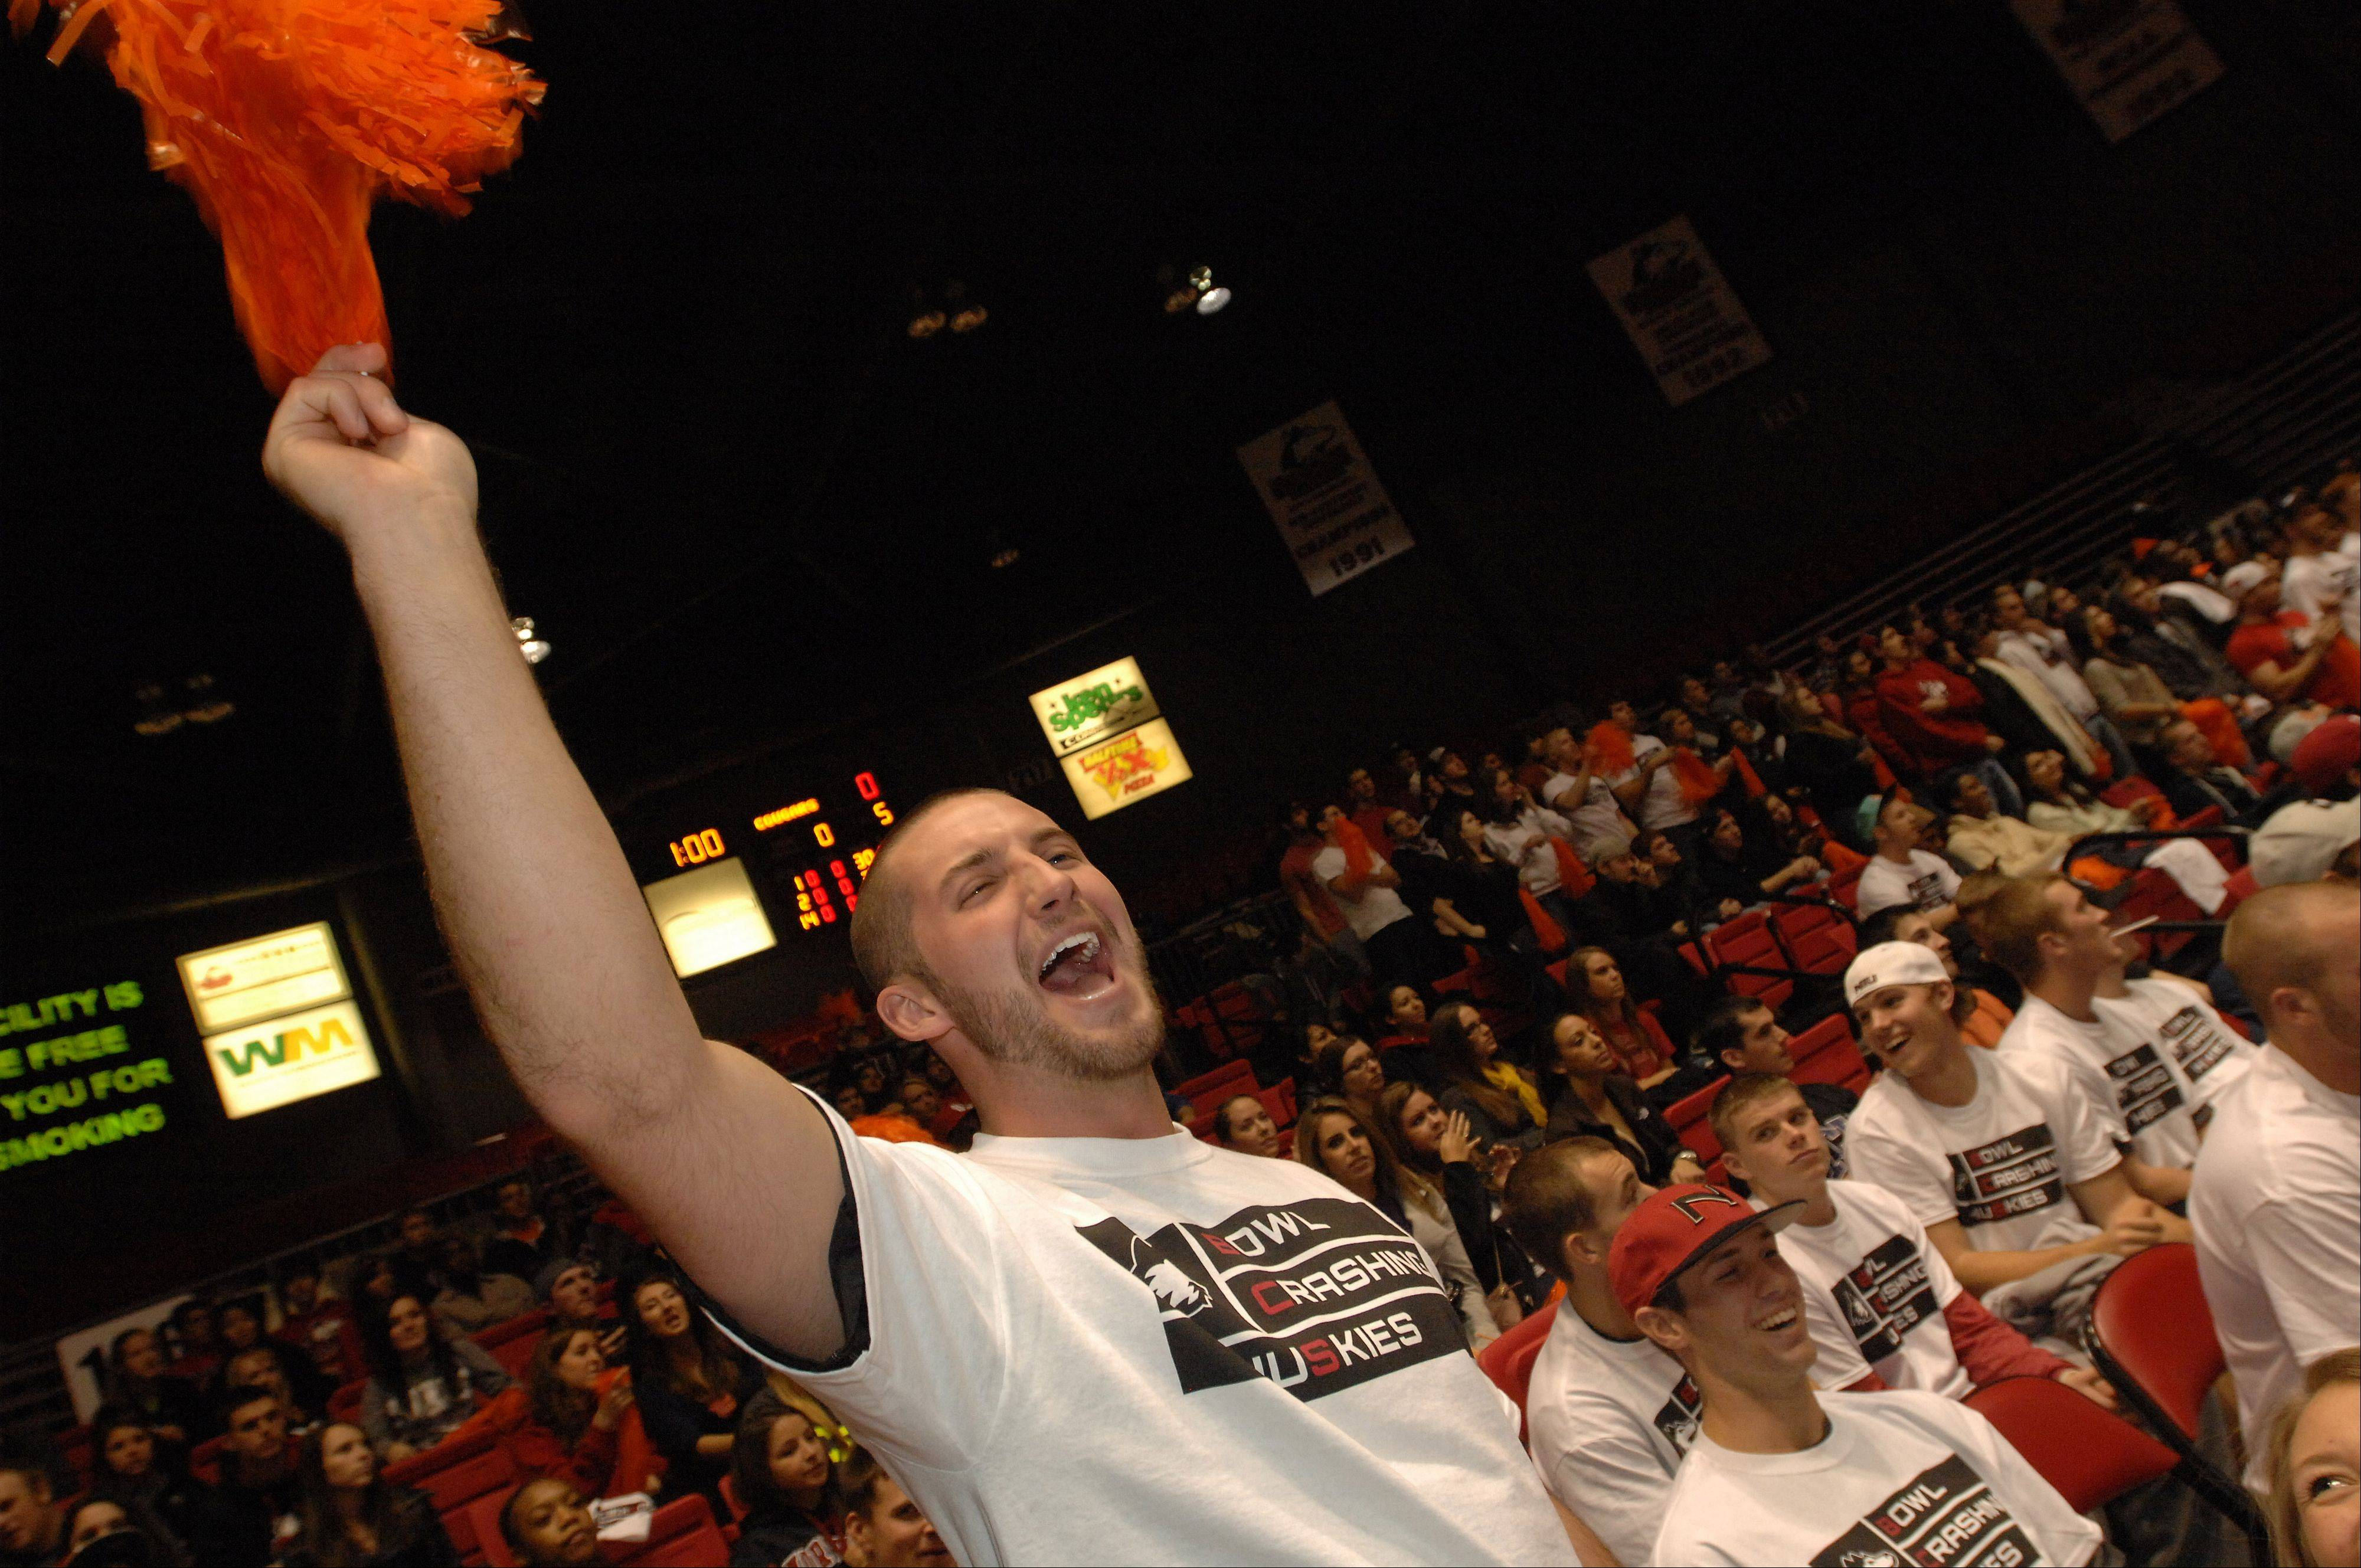 Connor Schomig cheers on NIU during a pep rally Wednesday in DeKalb.